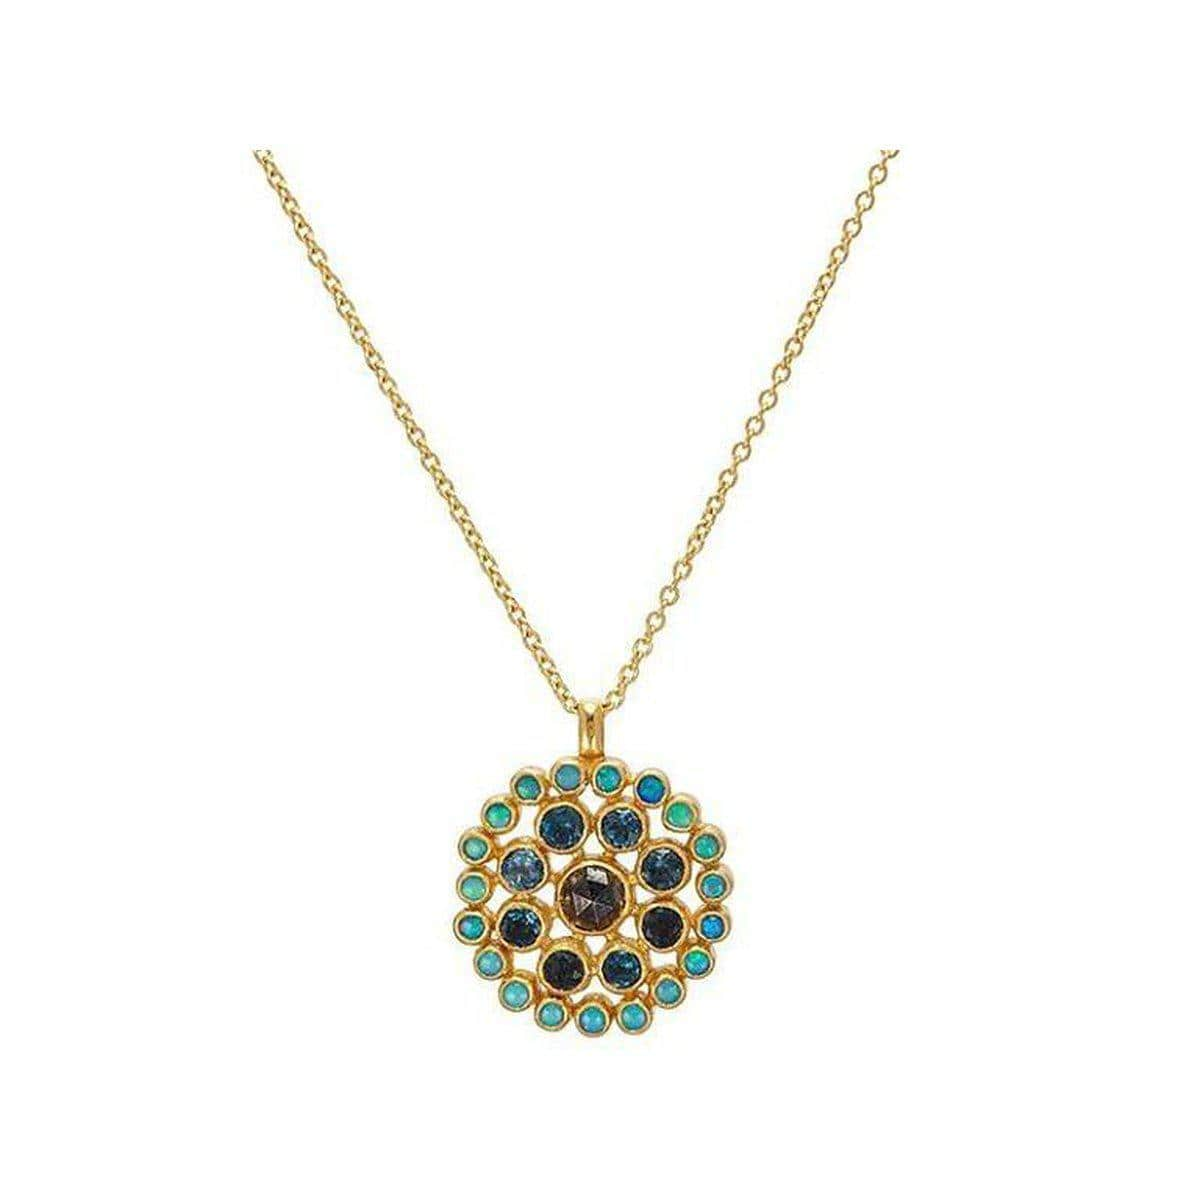 Juju 24K Gold Multi Stone Necklace - N-U24638-MS-GURHAN-Renee Taylor Gallery